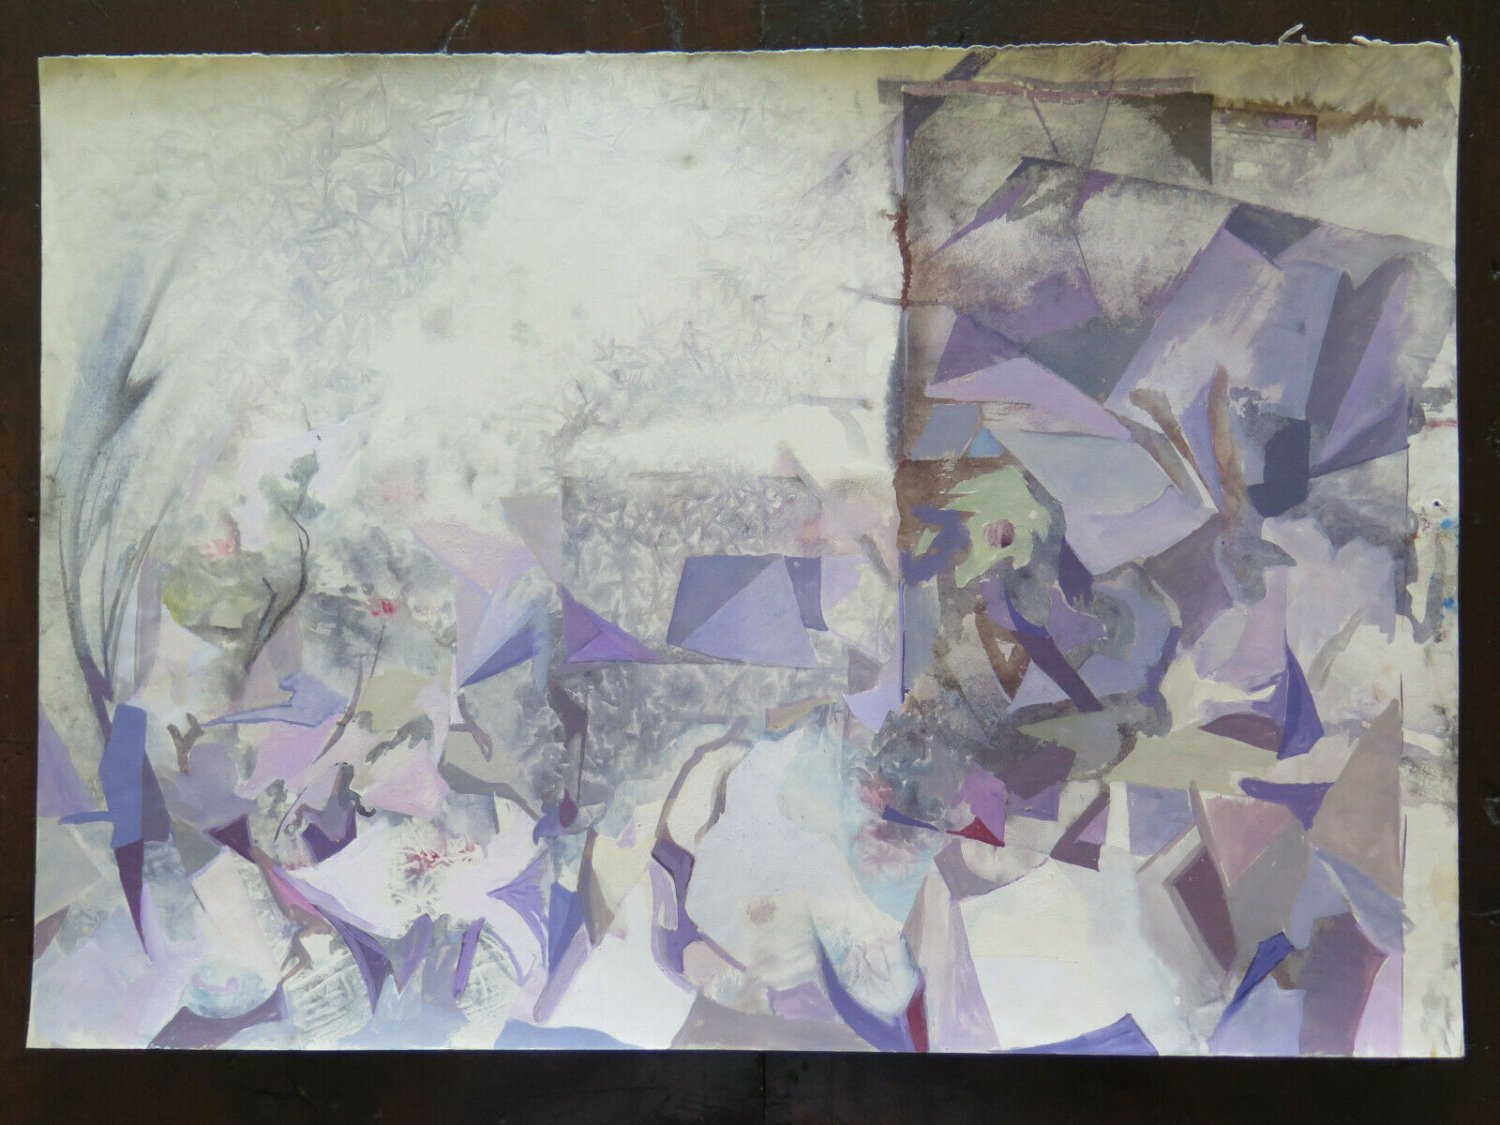 19 11/16x14 3/16in Painting Abstract Onirico with the Technical Frost Old Age